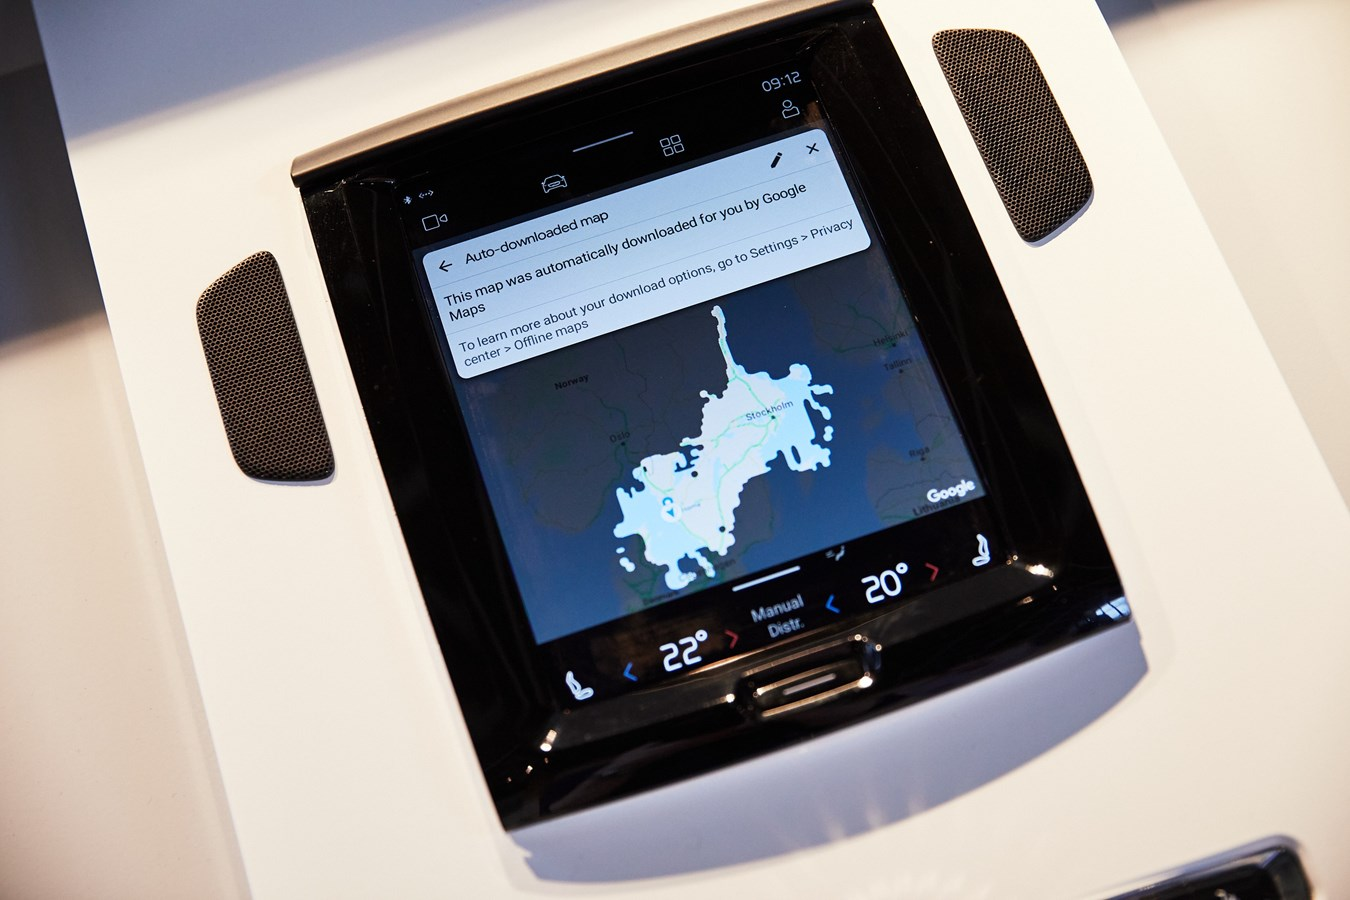 Volvo Cars new infotainment system powered by Android with Google technologies